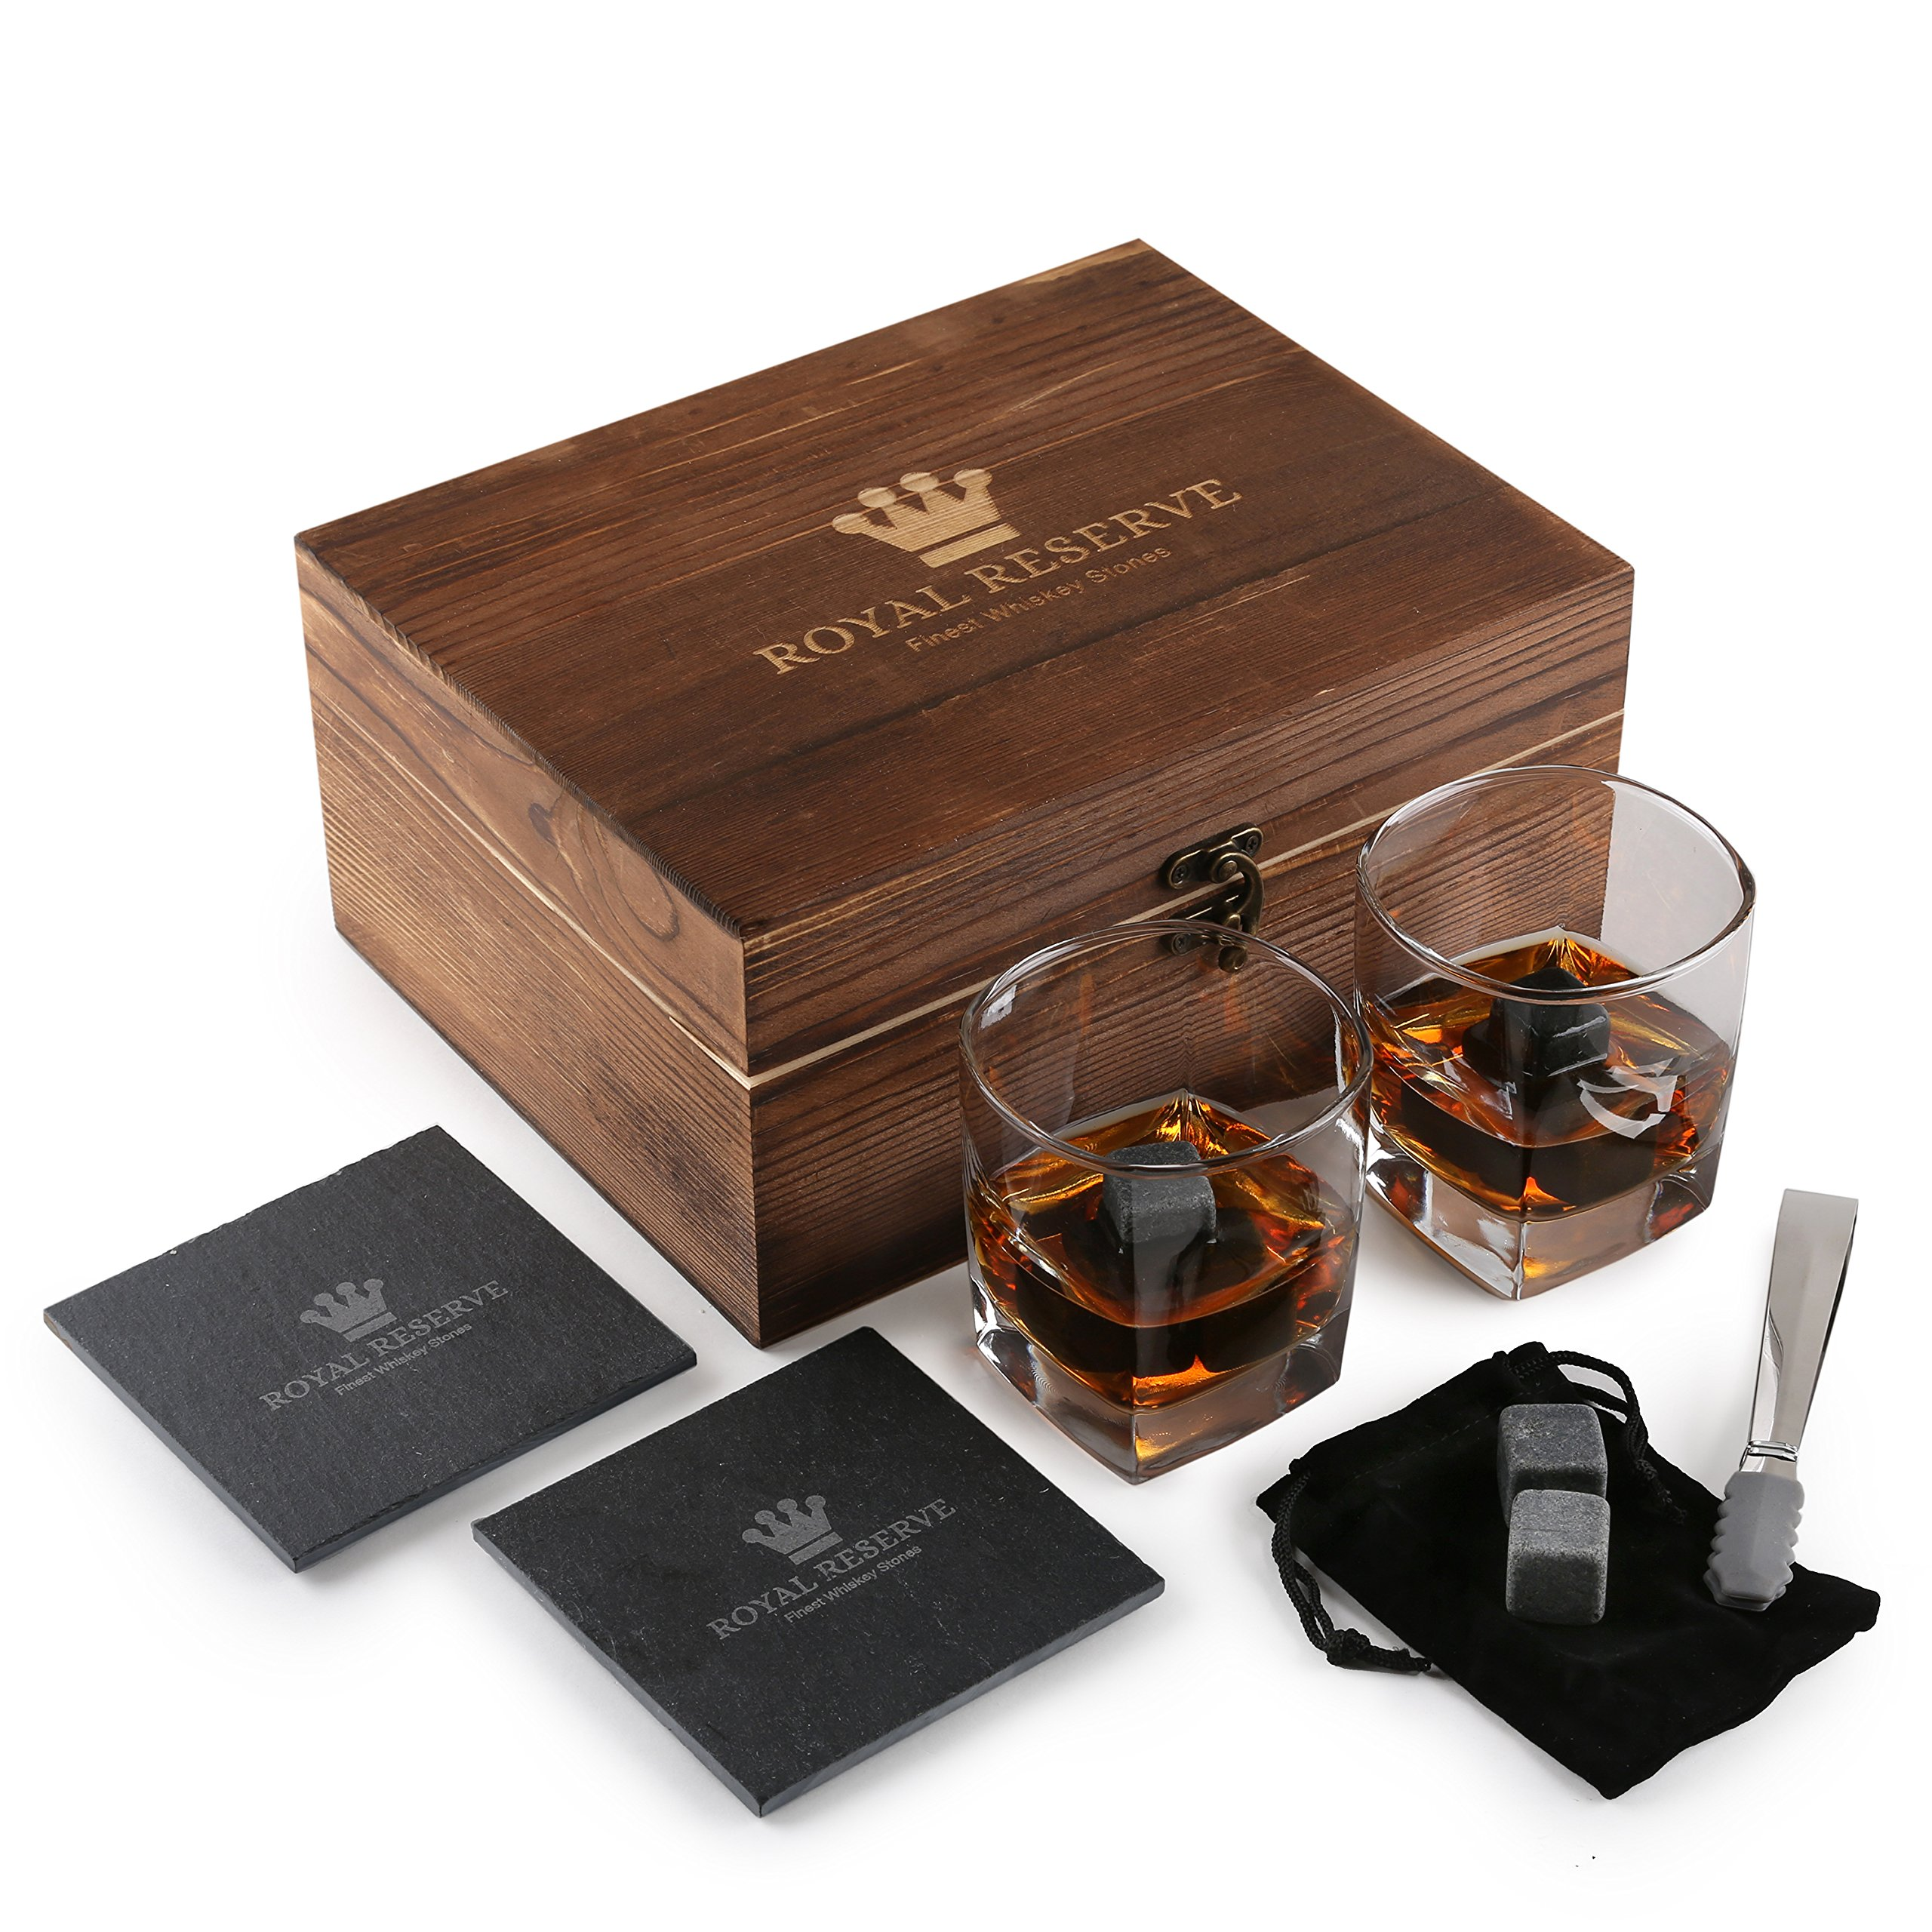 Whiskey Stones Gift Set by Royal Reserve | Husband Birthday Gifts Artisan Crafted Chilling Rocks Scotch Bourbon Glasses and Slate Table Coasters - Gift for Men Dad Boyfriend Anniversary or Retirement by Royal Reserve